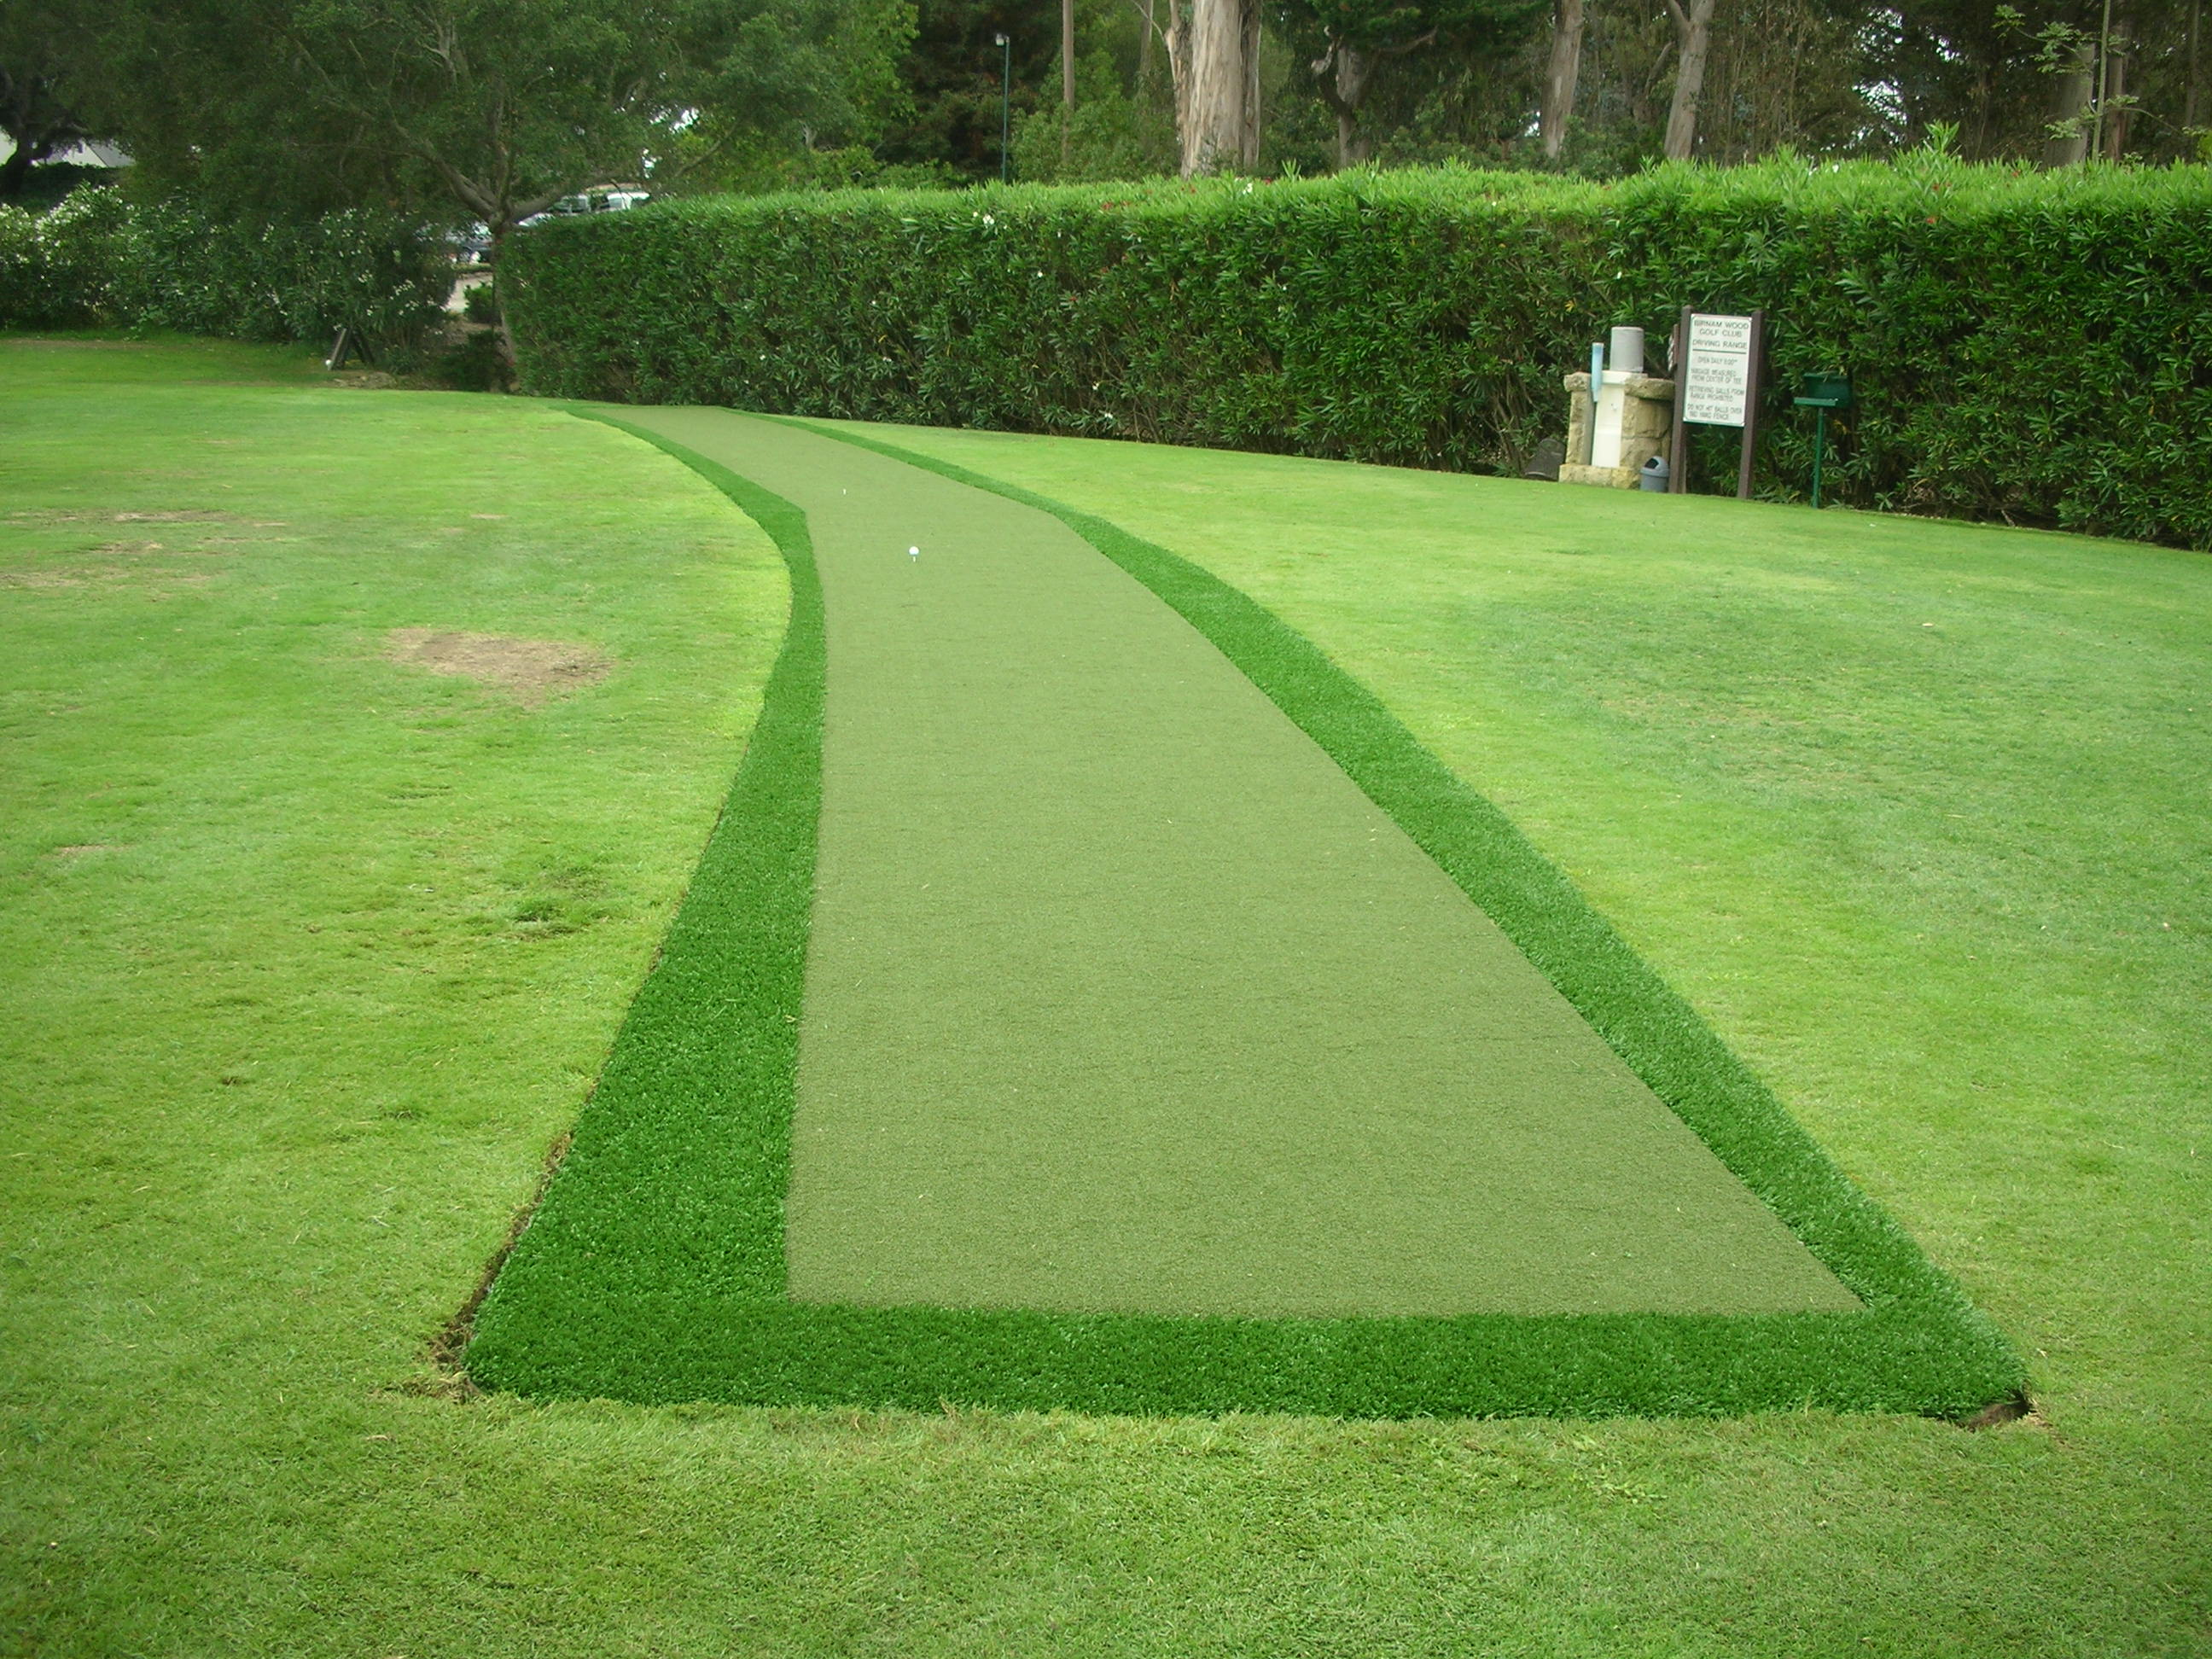 mat x residential synthetic duraplay ft mats p with turf mm foam backing golf putting greens